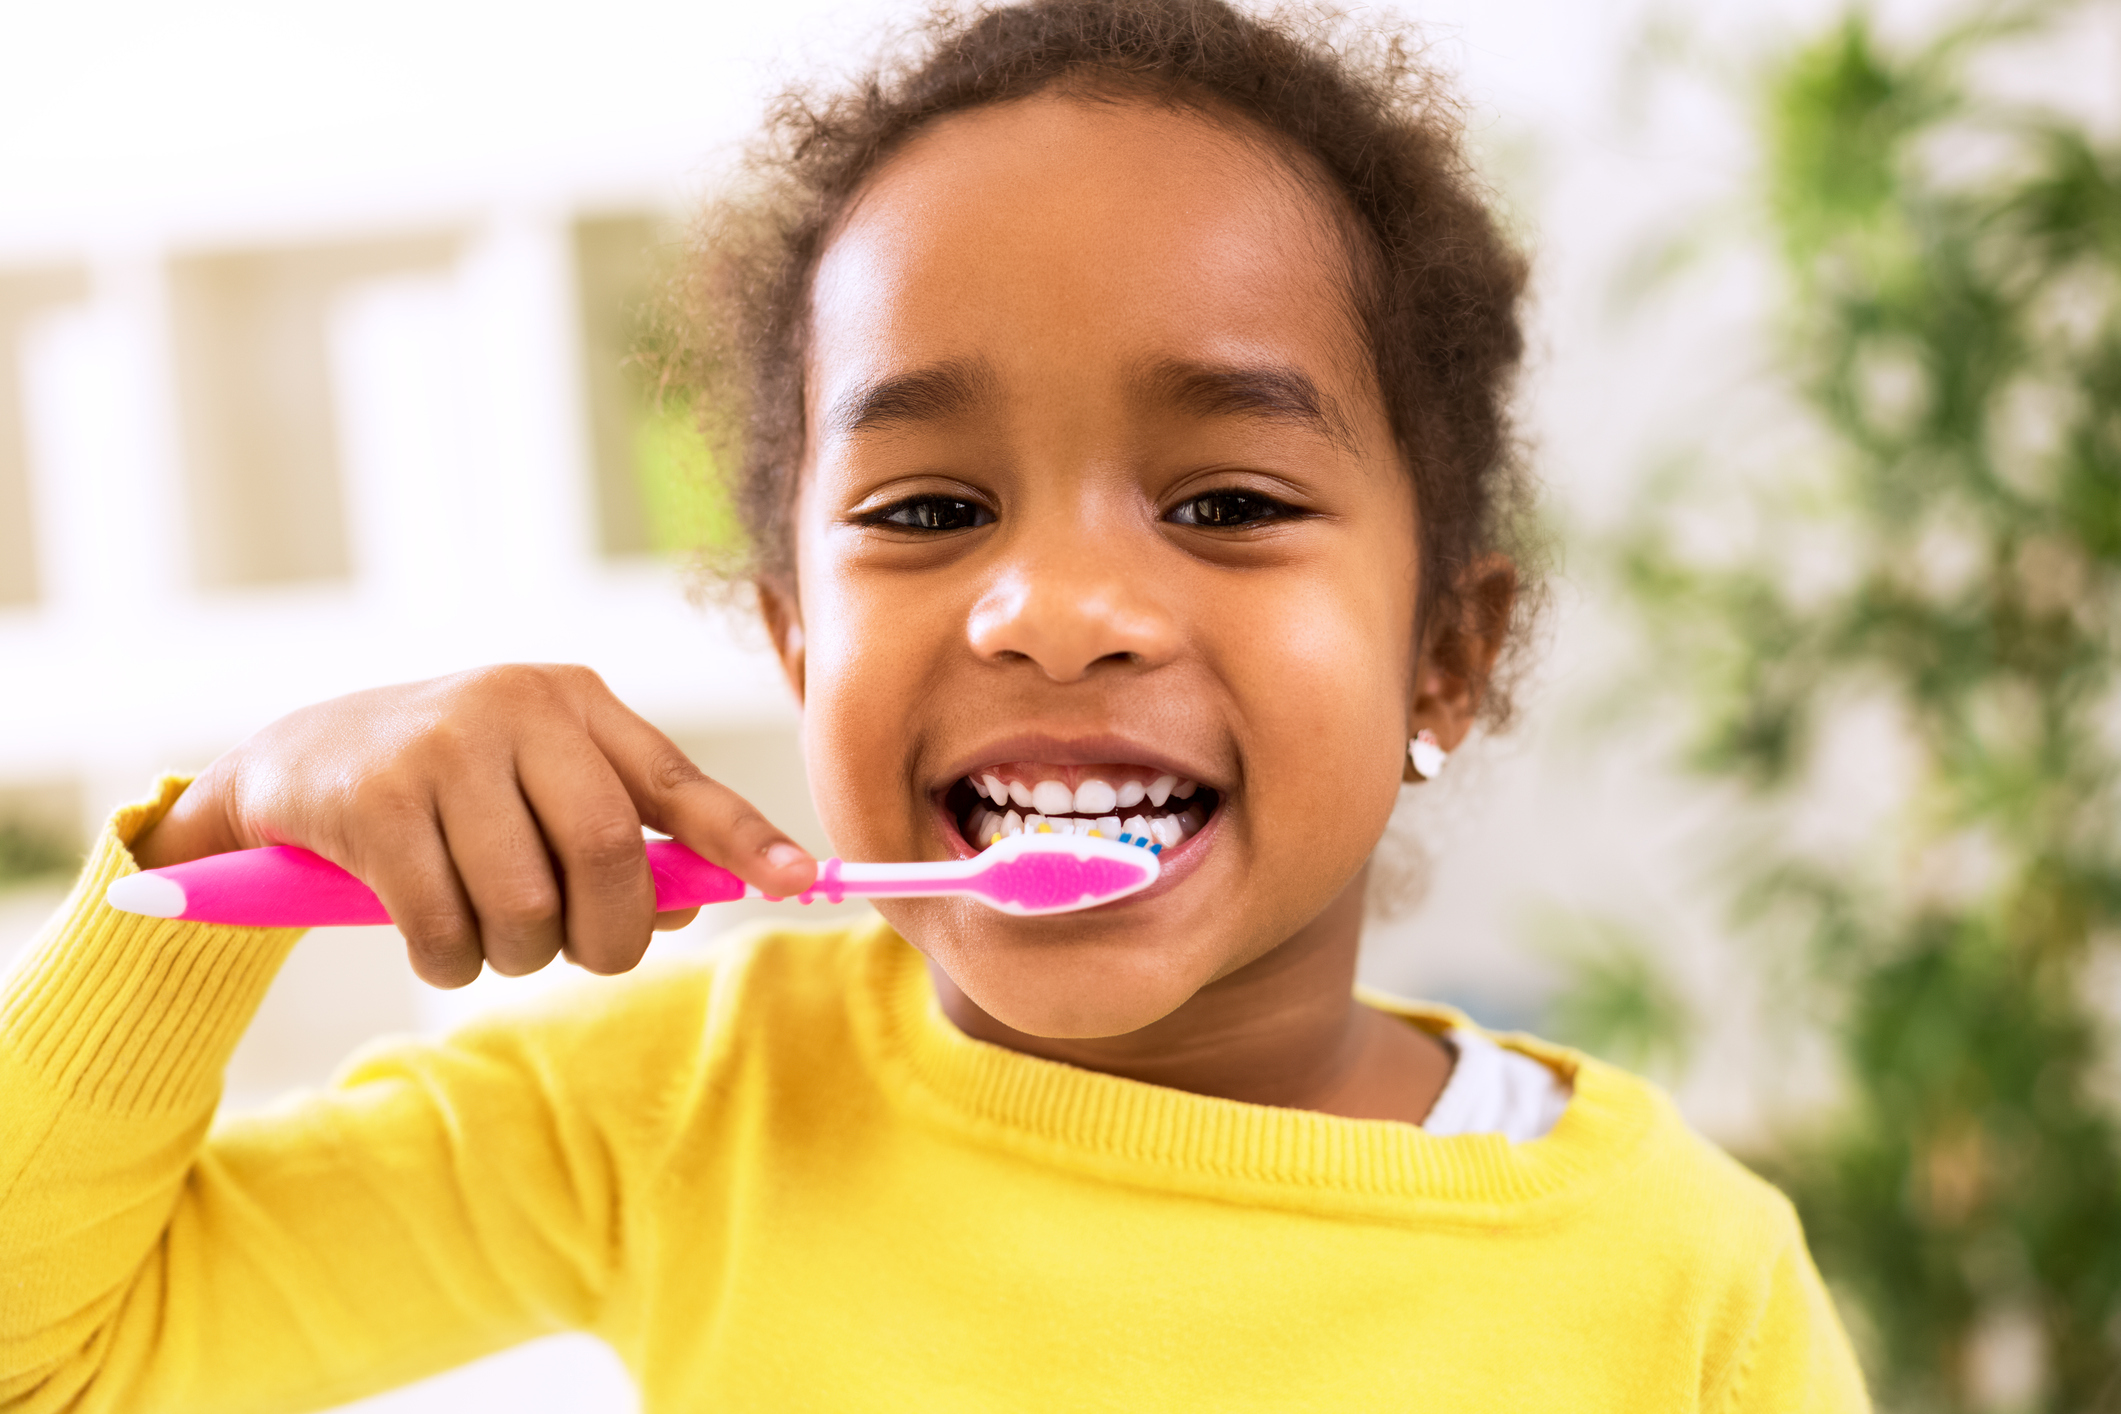 Low Income Children Deserve Better Access To Dental Care